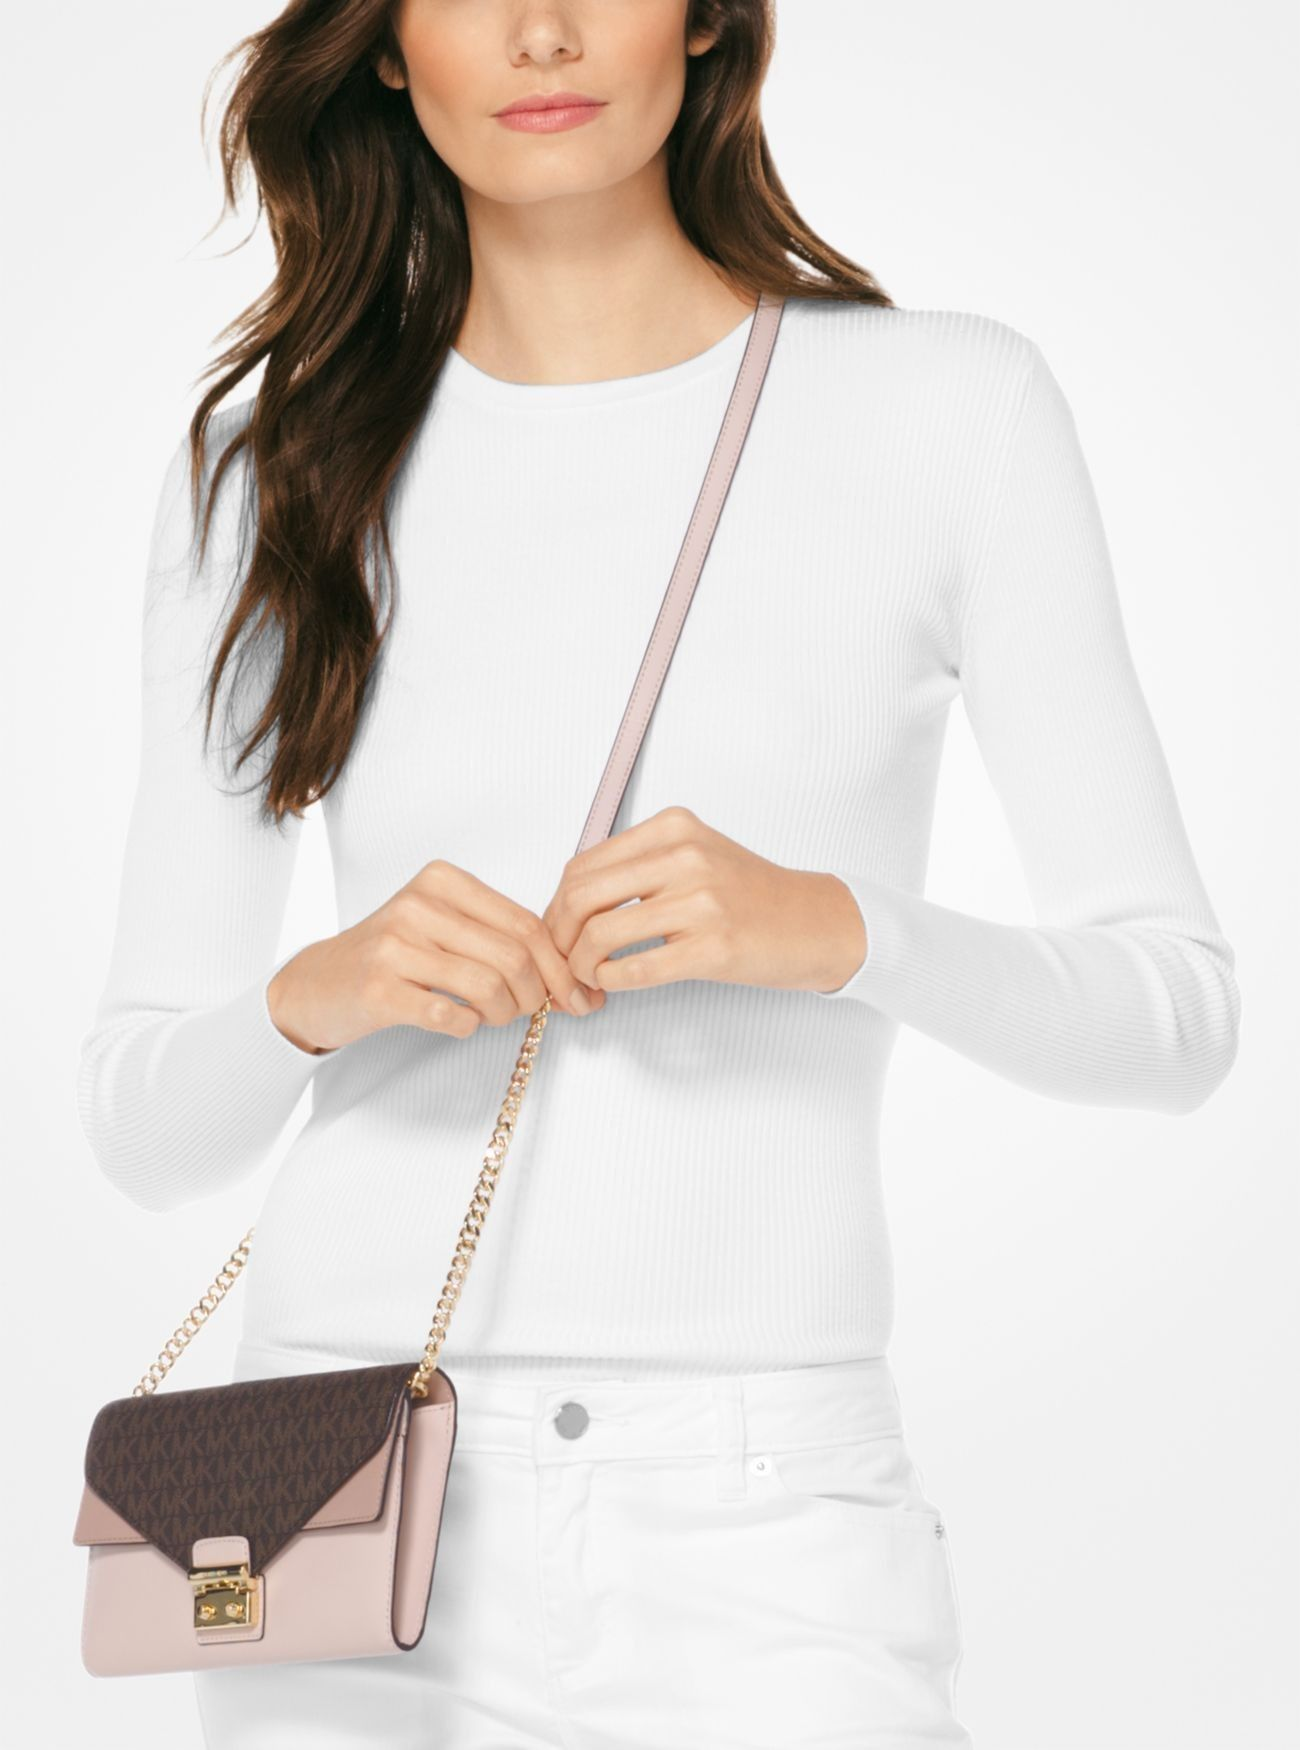 d1ddb4d838e Price Michael Kors Brn Sfpk Fwn Sloan Logo and Leather Chain Wallet Outlet